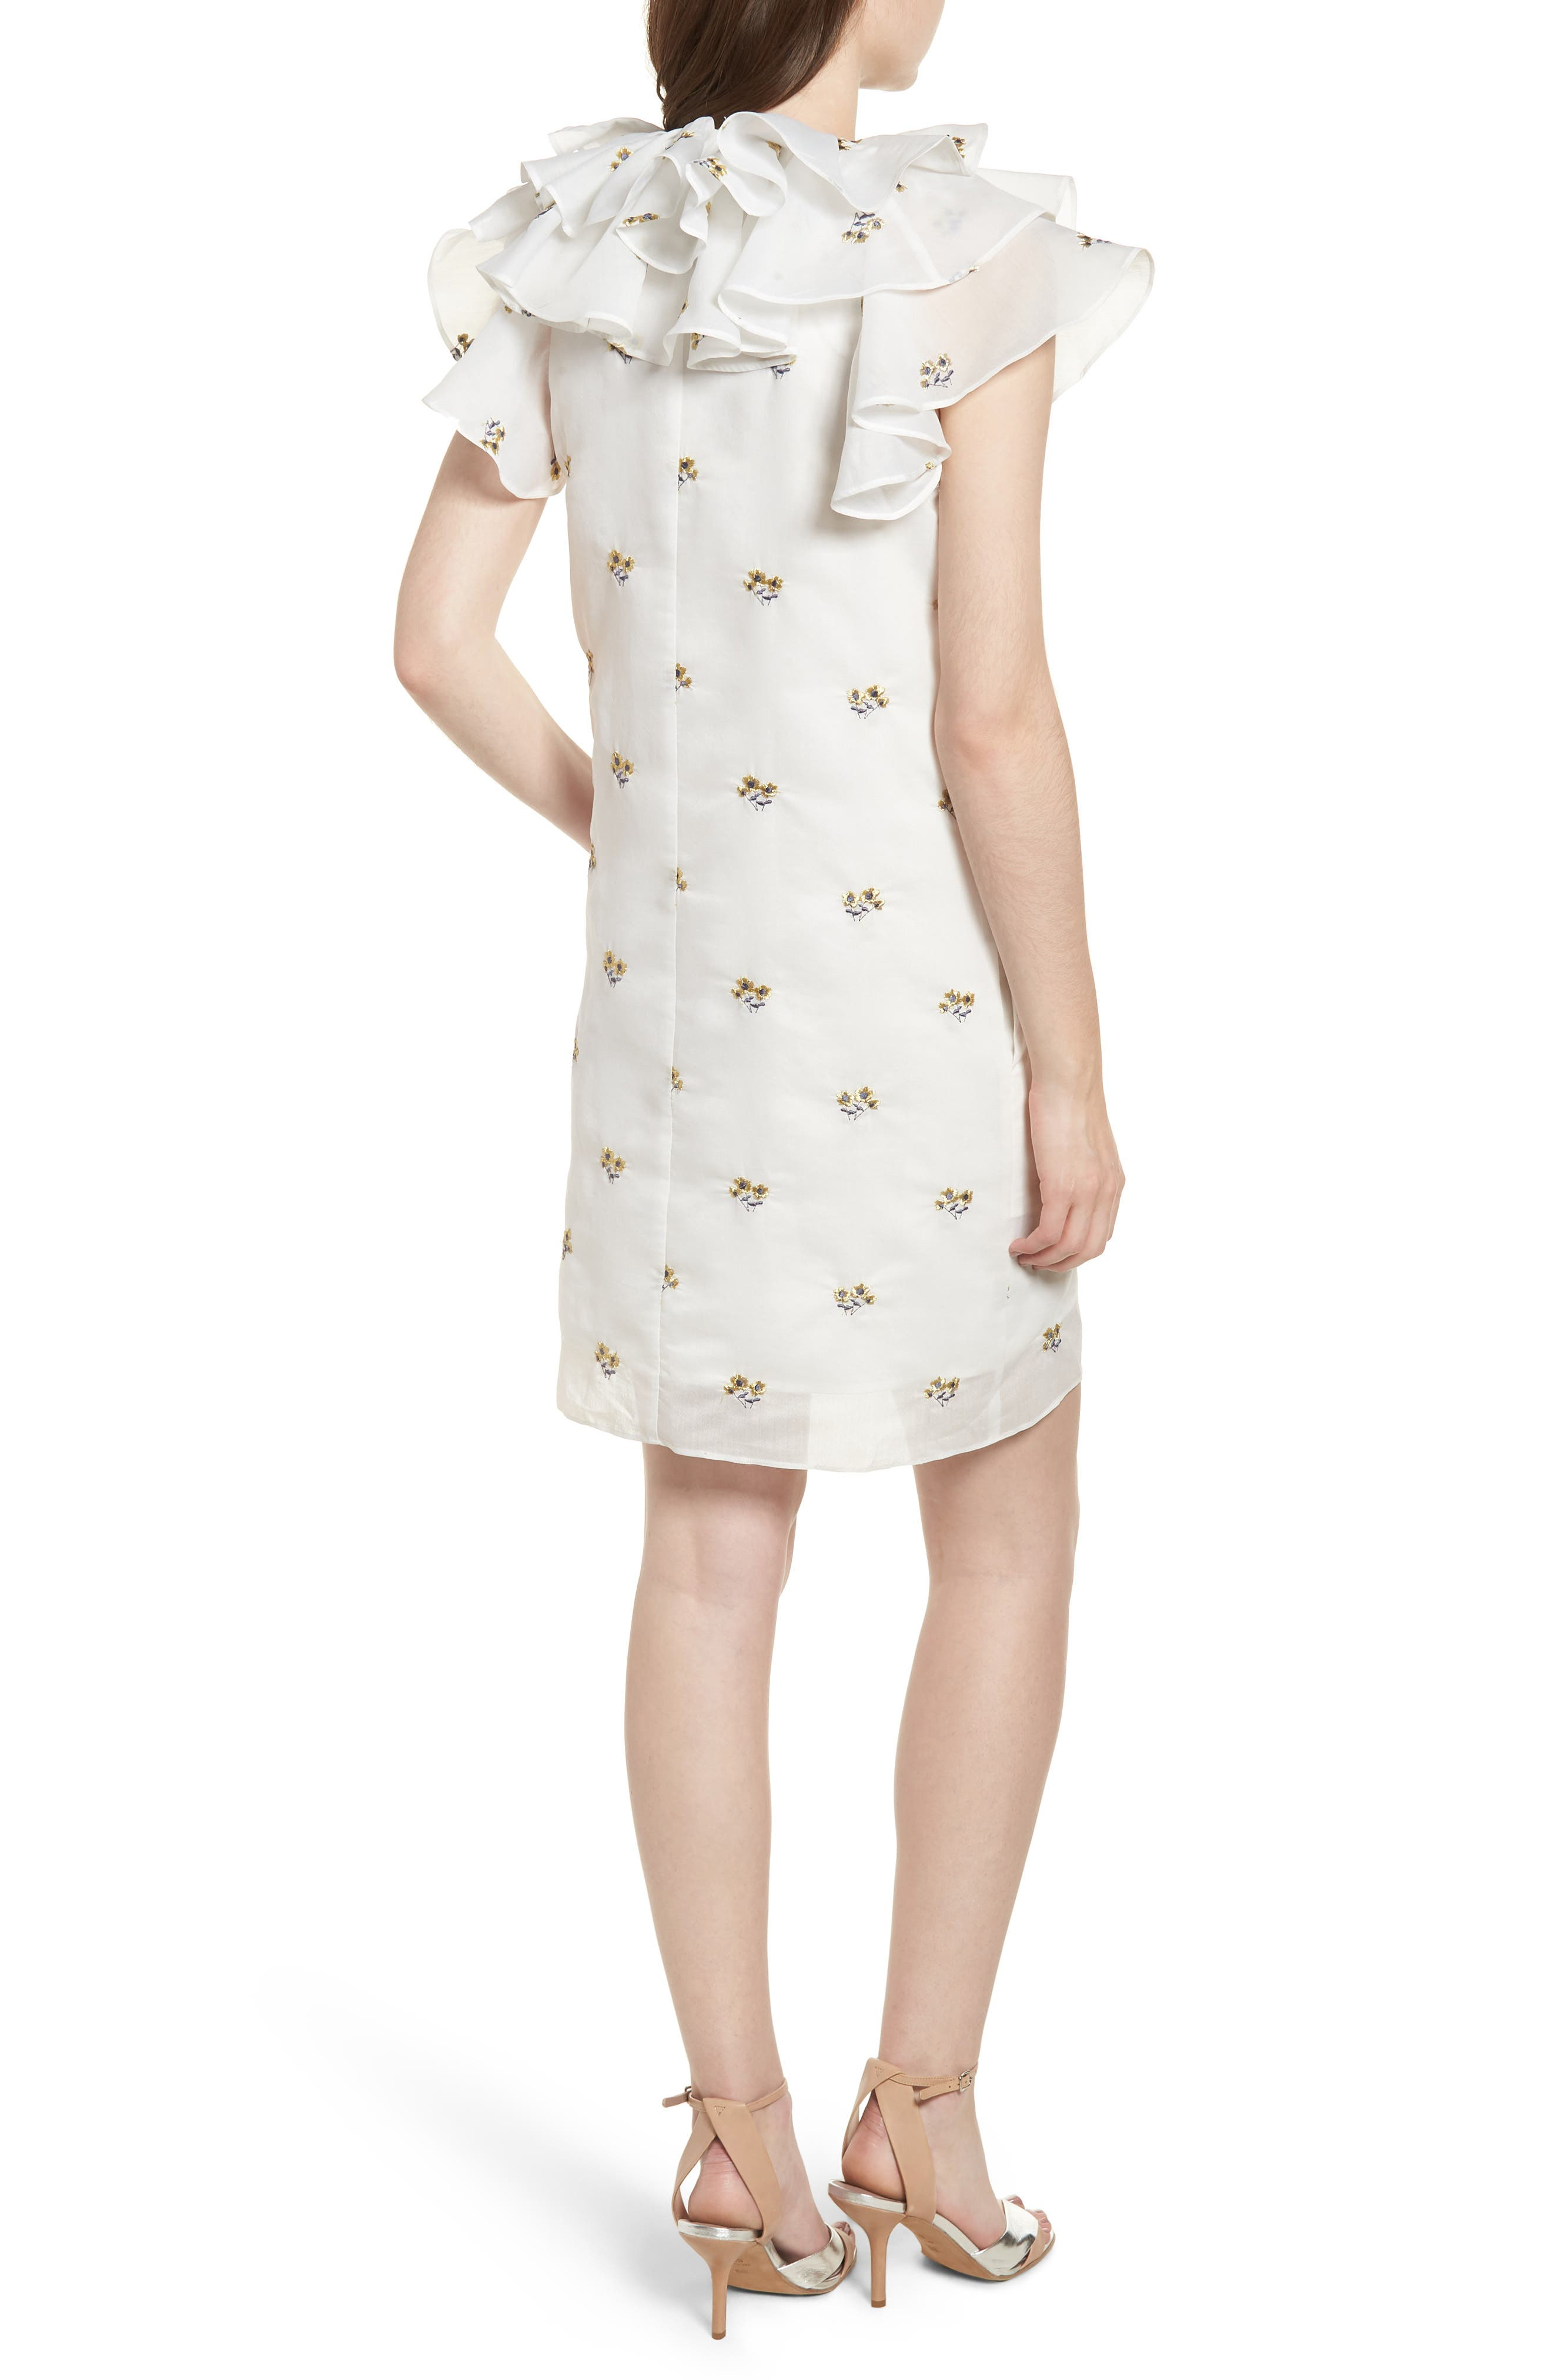 Theseus Embroidered Ruffle Dress,                             Alternate thumbnail 2, color,                             White